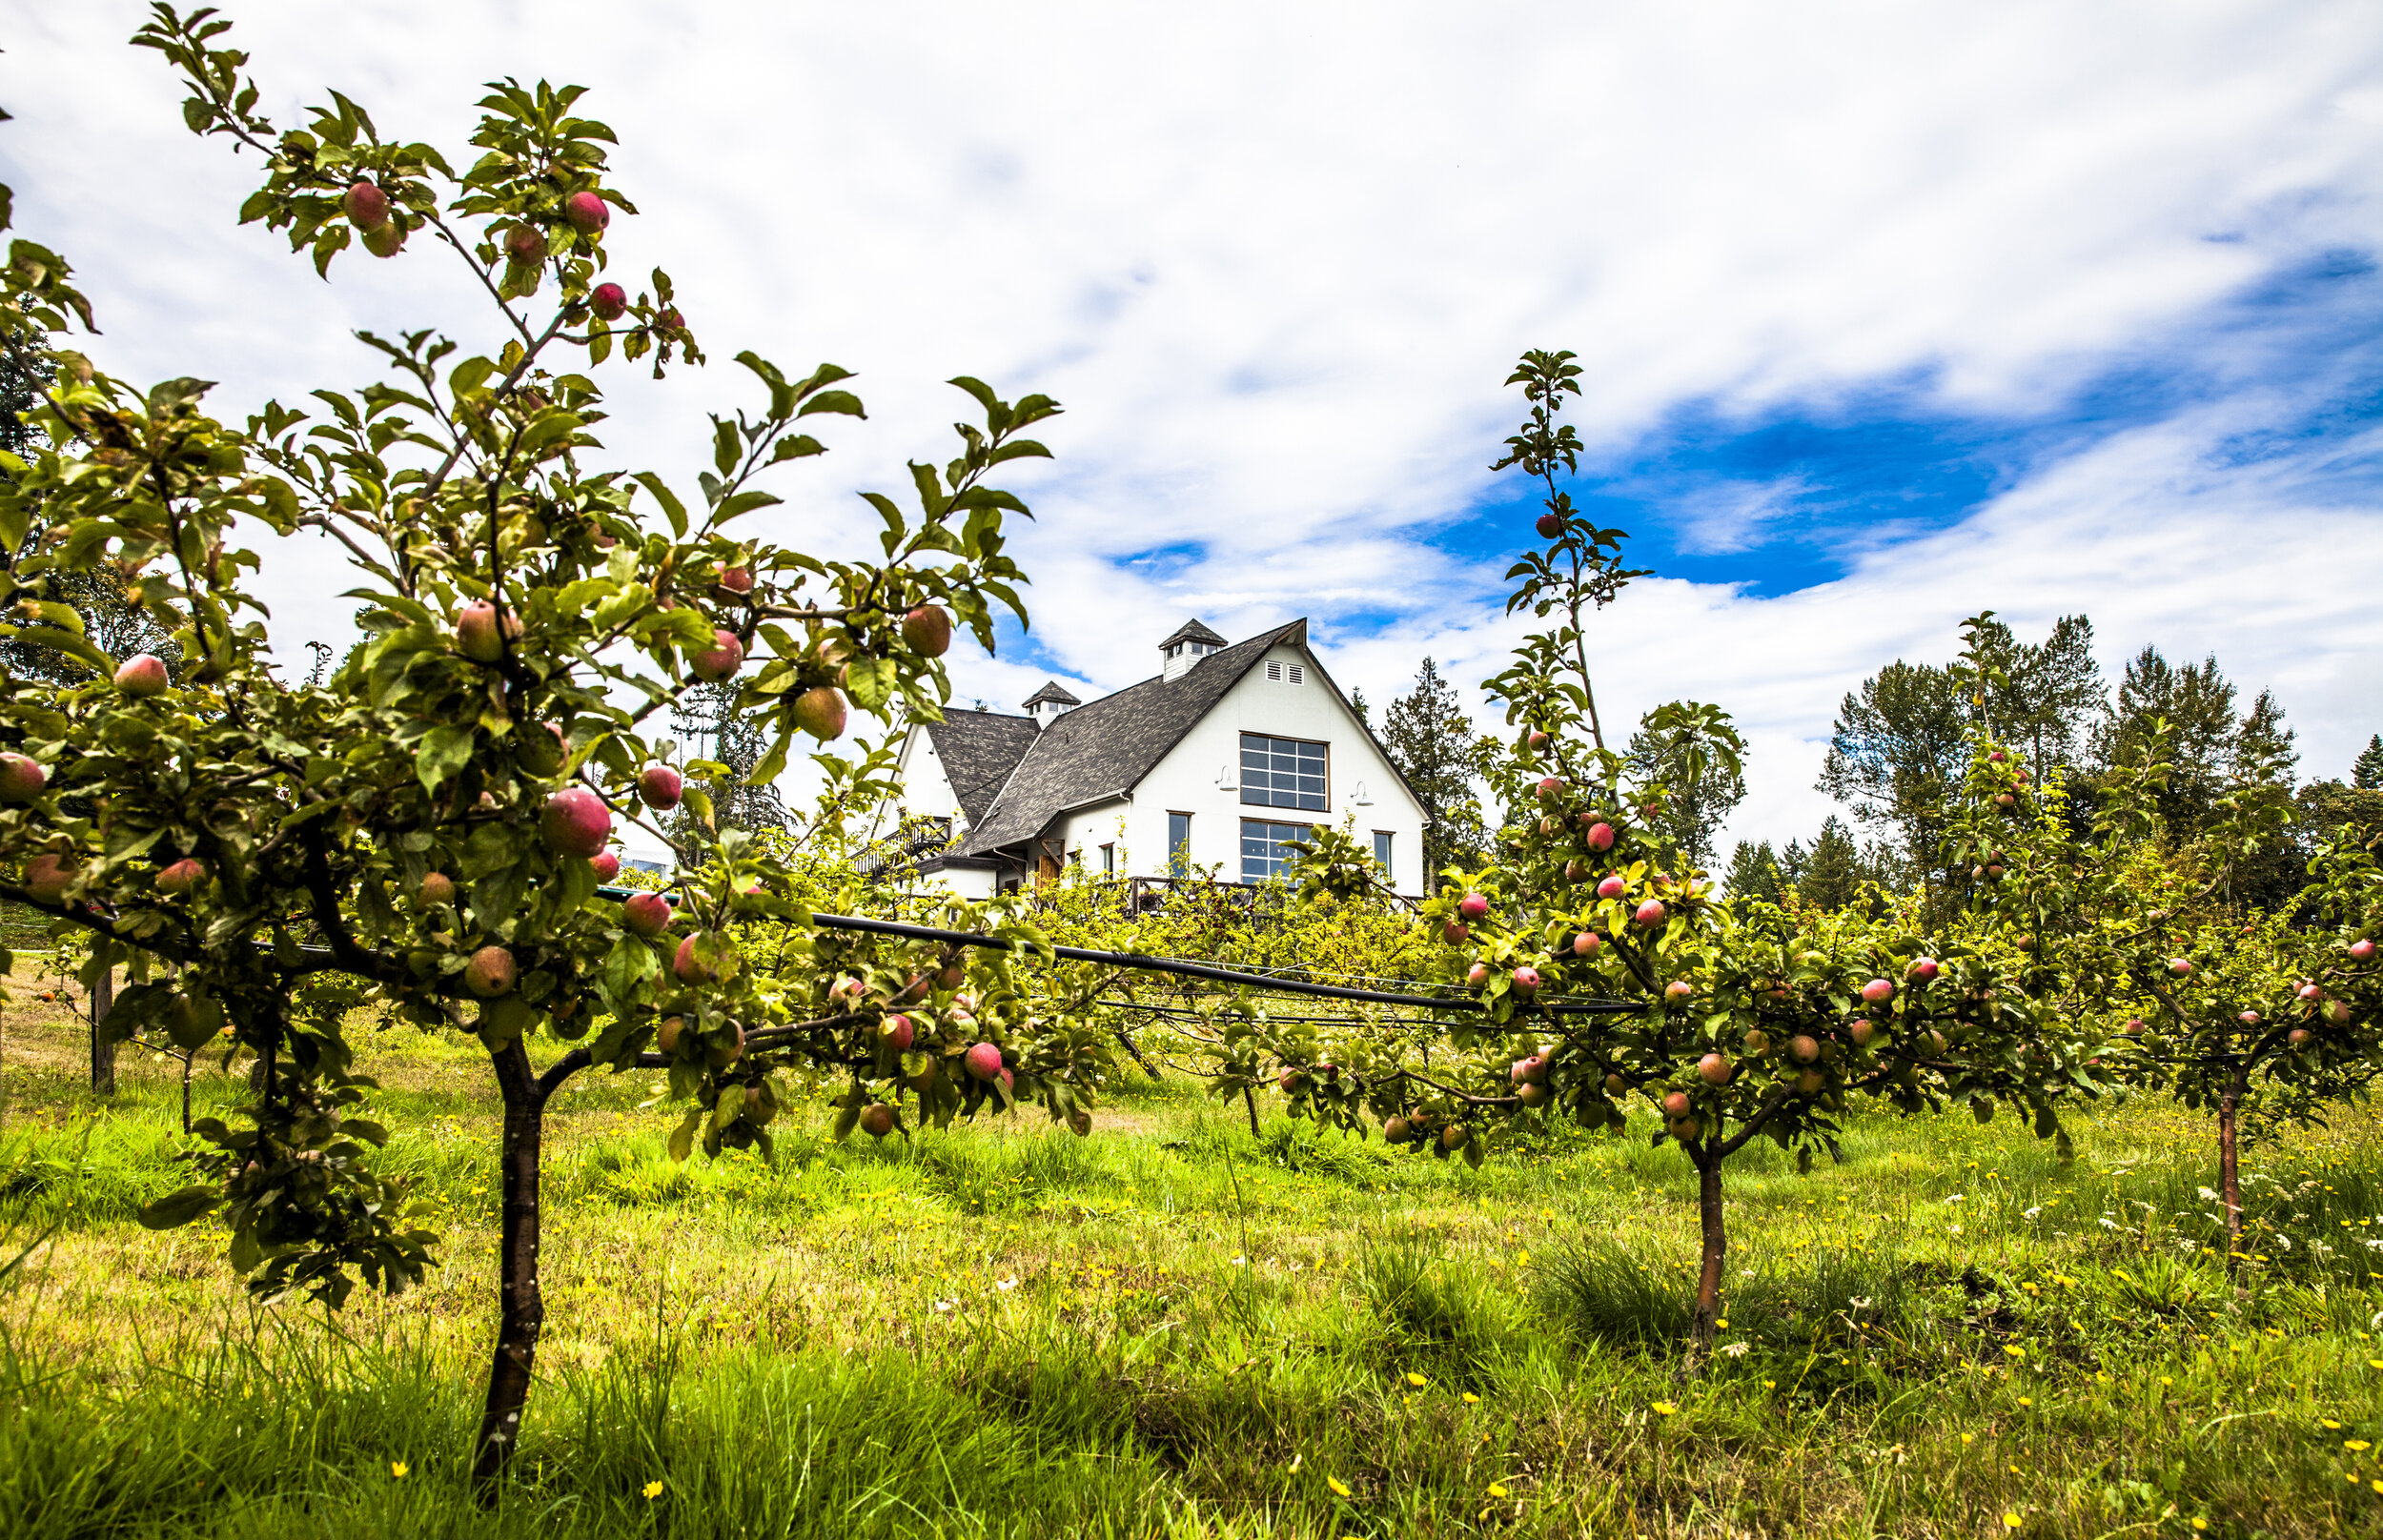 Drop into Sea Cider Farm & Ciderhouse for a refreshing pint or a picnic in the orchard.  Tourism Victoria